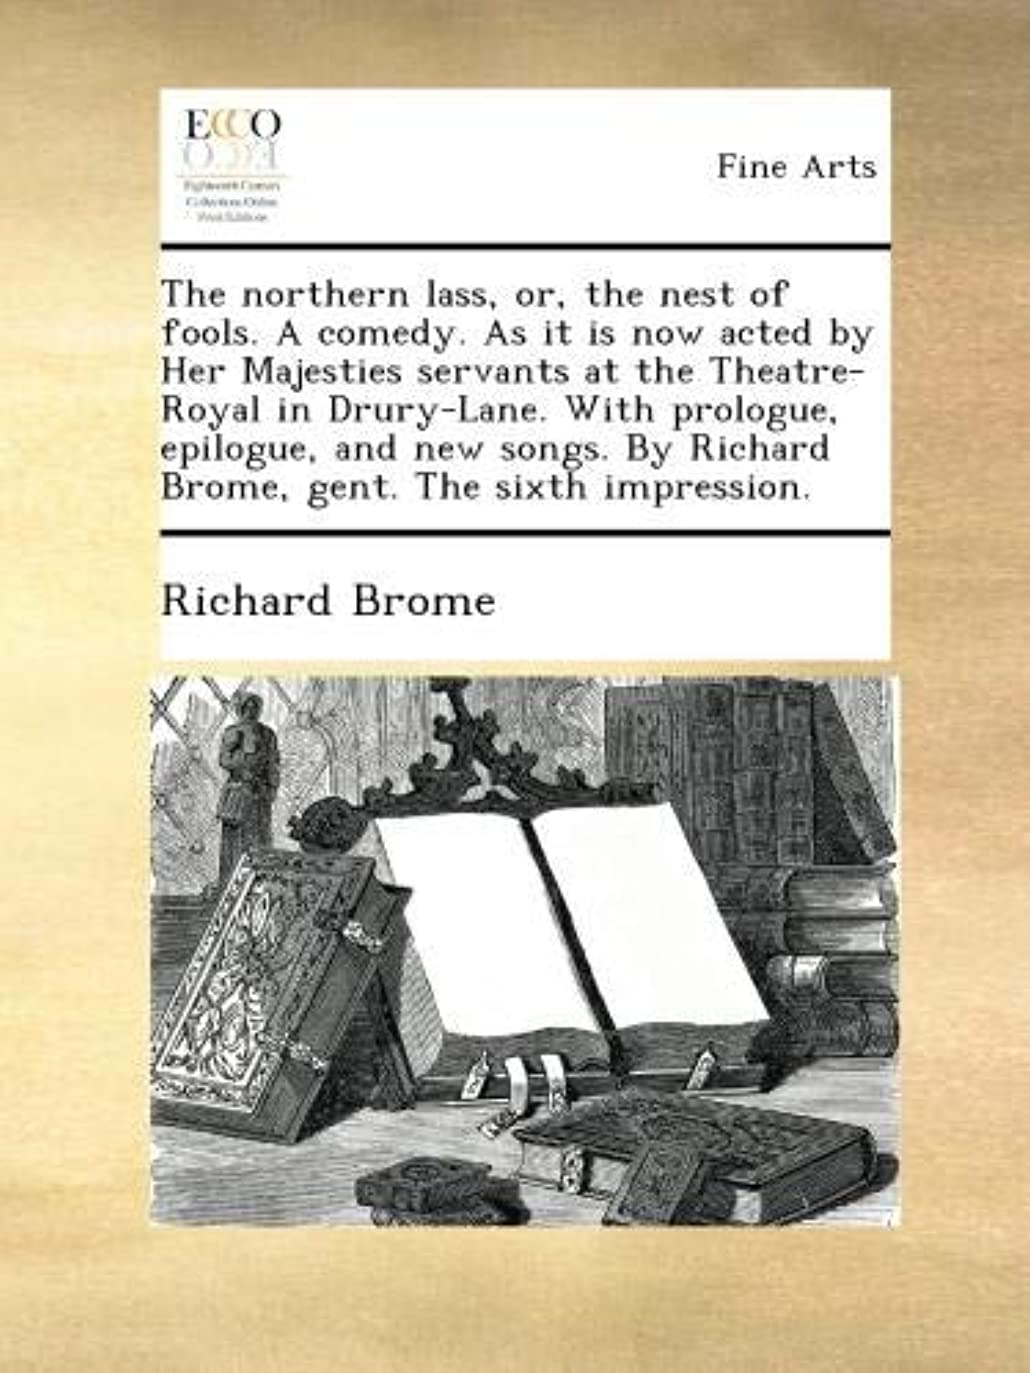 トークン畝間抵抗力があるThe northern lass, or, the nest of fools. A comedy. As it is now acted by Her Majesties servants at the Theatre-Royal in Drury-Lane. With prologue, epilogue, and new songs. By Richard Brome, gent. The sixth impression.